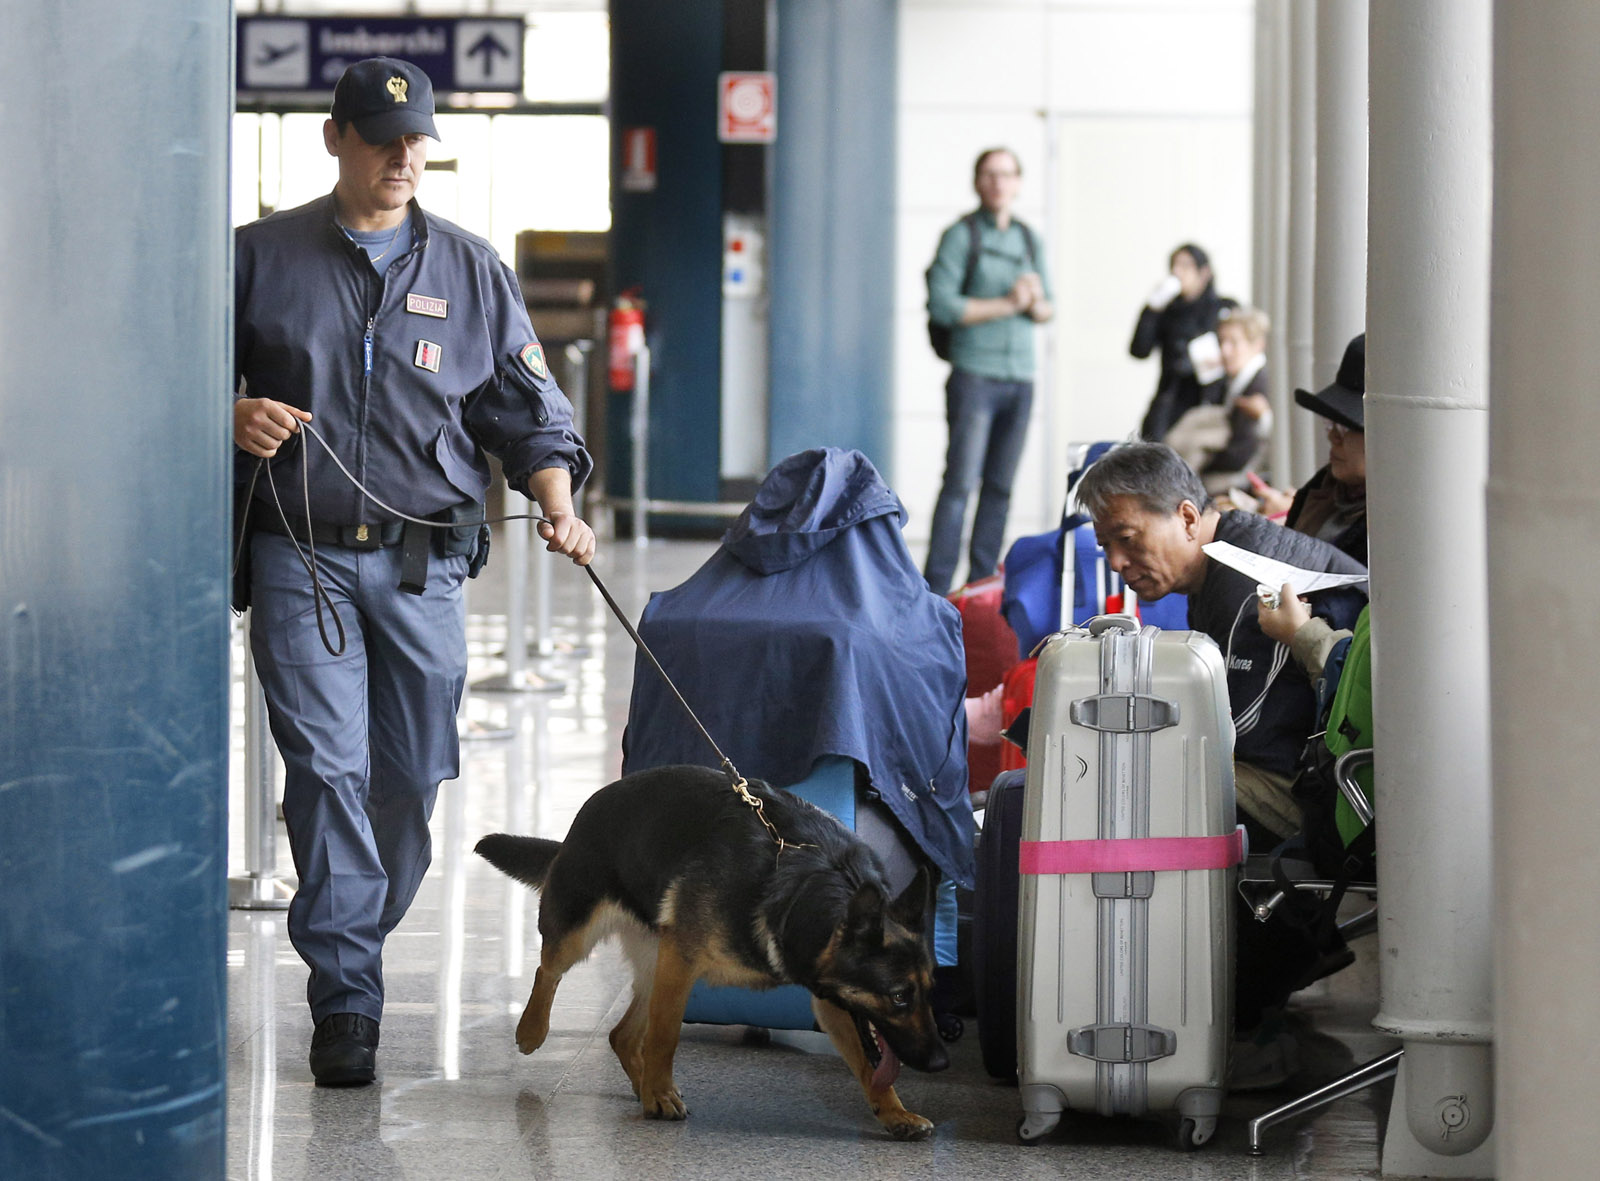 A Italian police dog sniffs passengers' luggage at Leonardo Da Vinci airport in Fiumicino, near Rome, Tuesday, March 22, 2016. Authorities in Europe and beyond have tightened security at airports, on subways, at the borders and on city streets after deadly attacks Tuesday on the Brussels airport and its subway system. (AP Photo/Alessandra Tarantino)